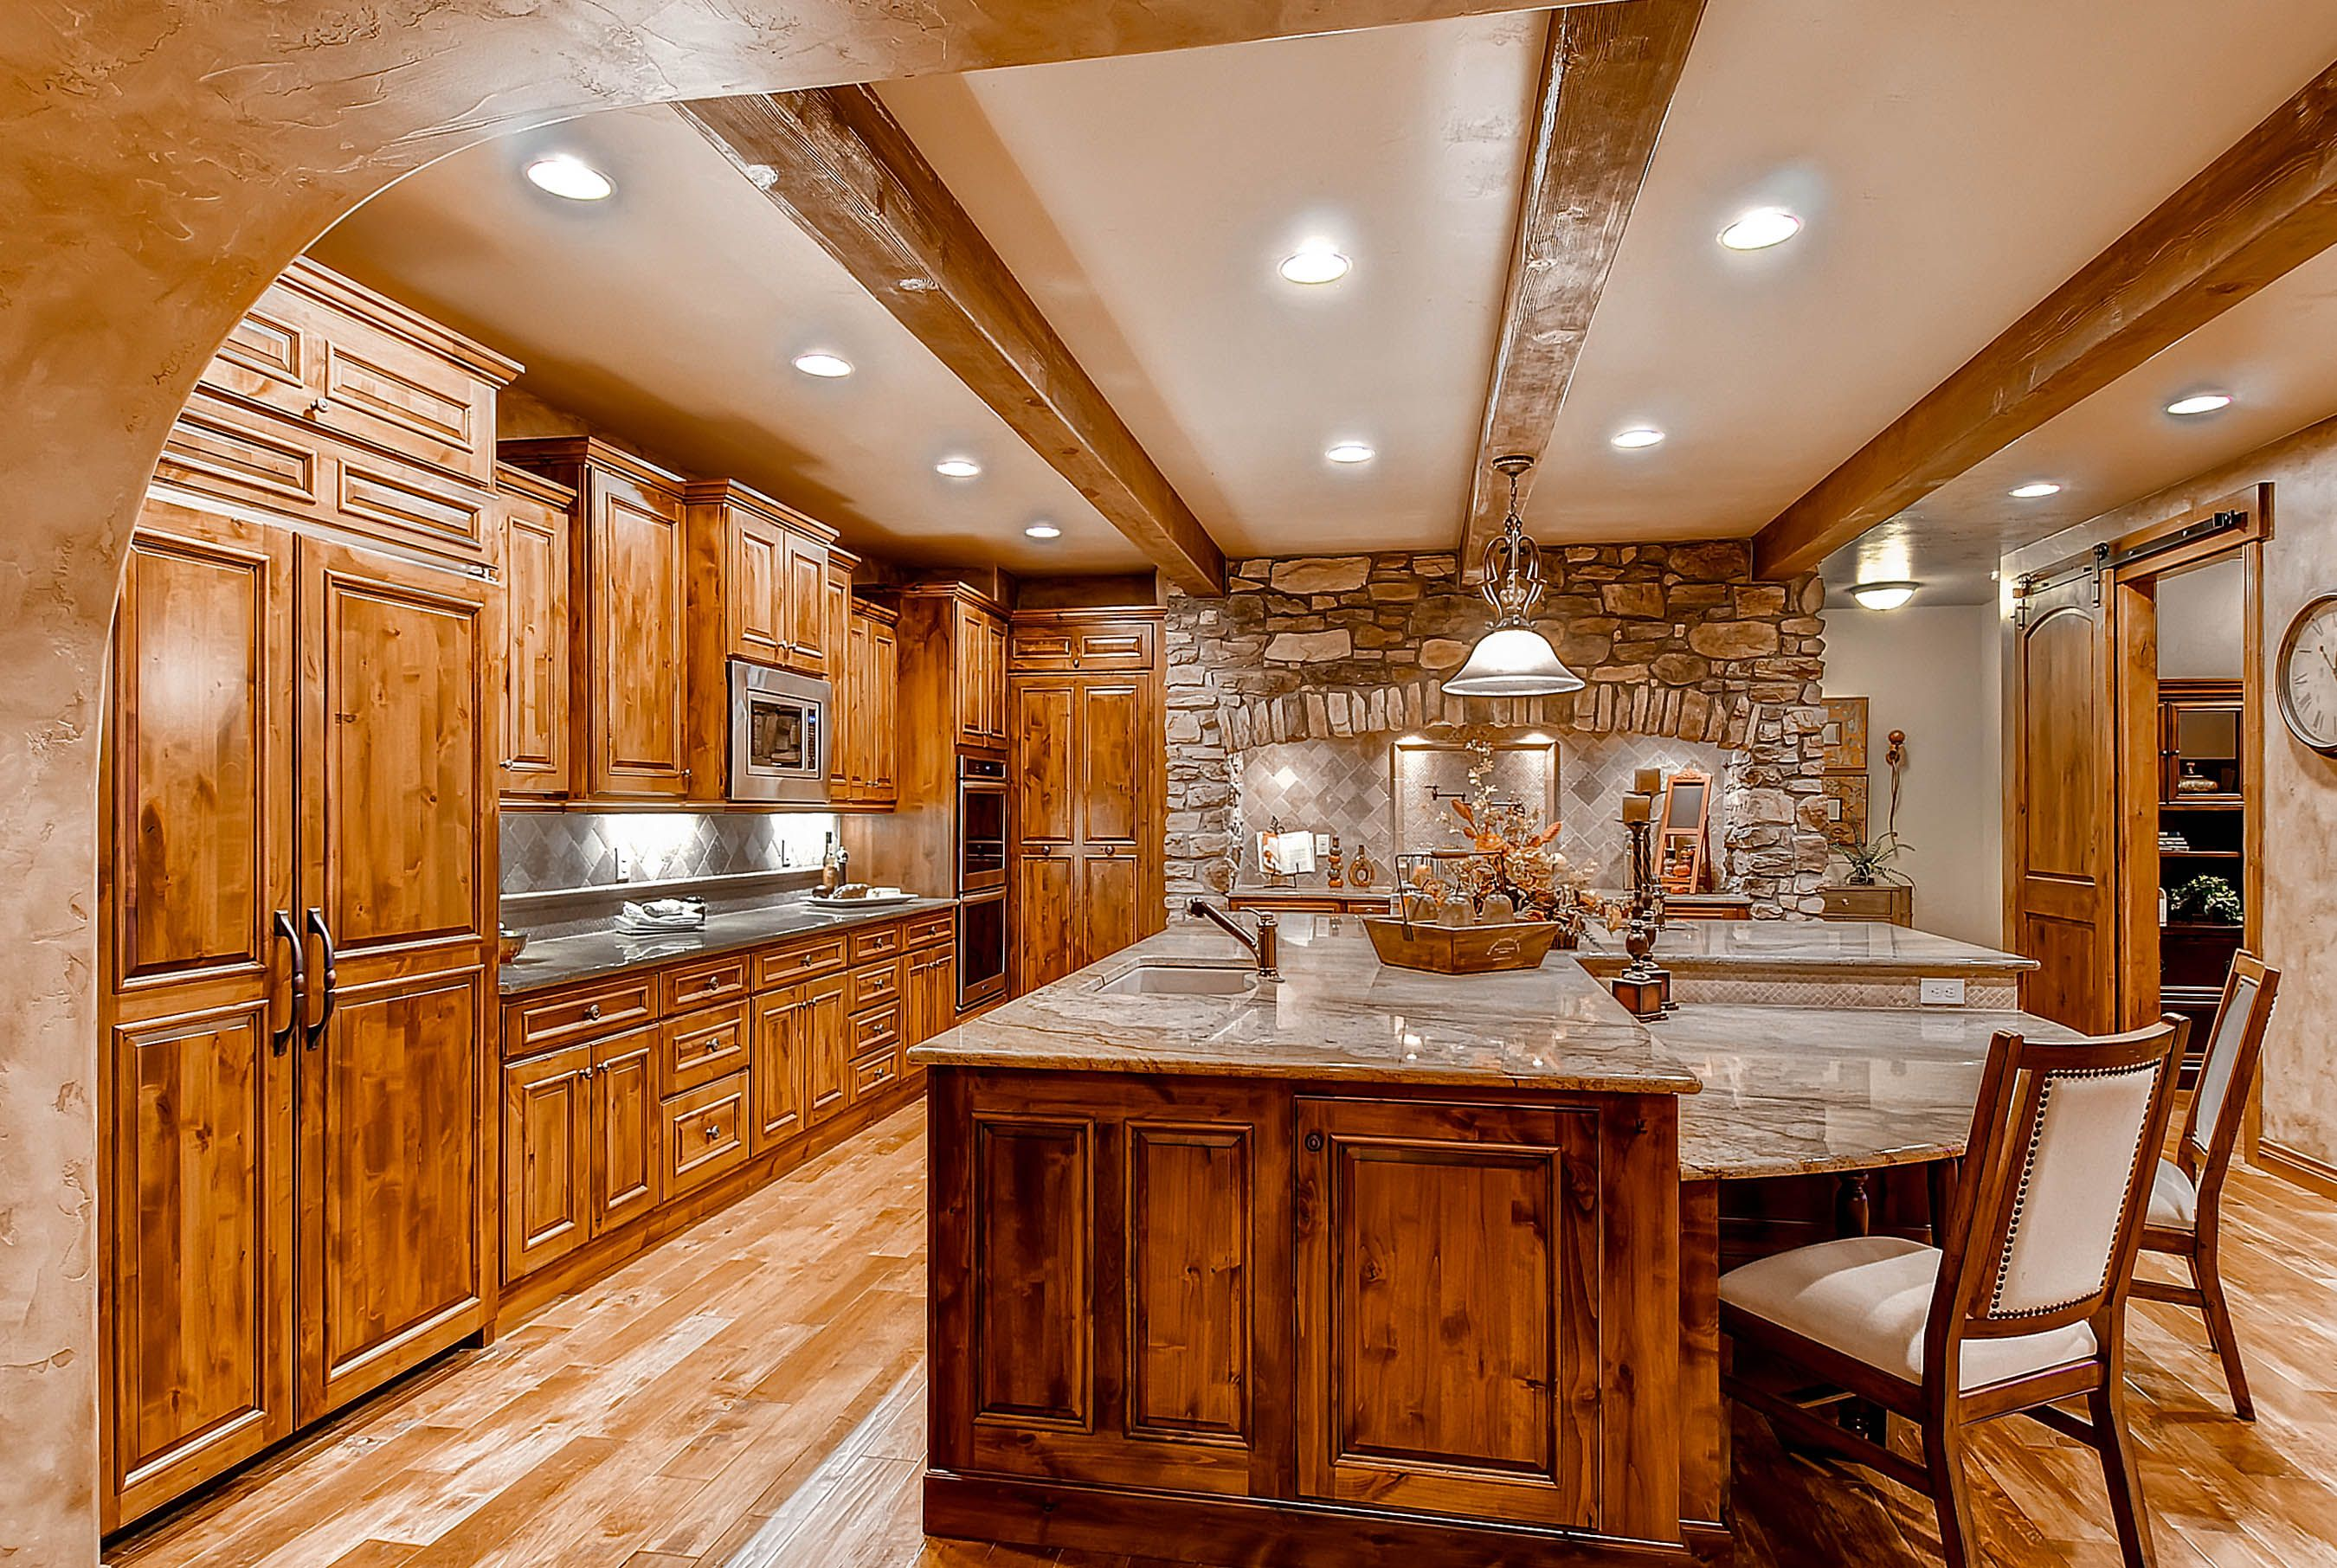 Custom island with hard wood cabinetry, wood beams create the length in the kitchen design. Built in appliances.